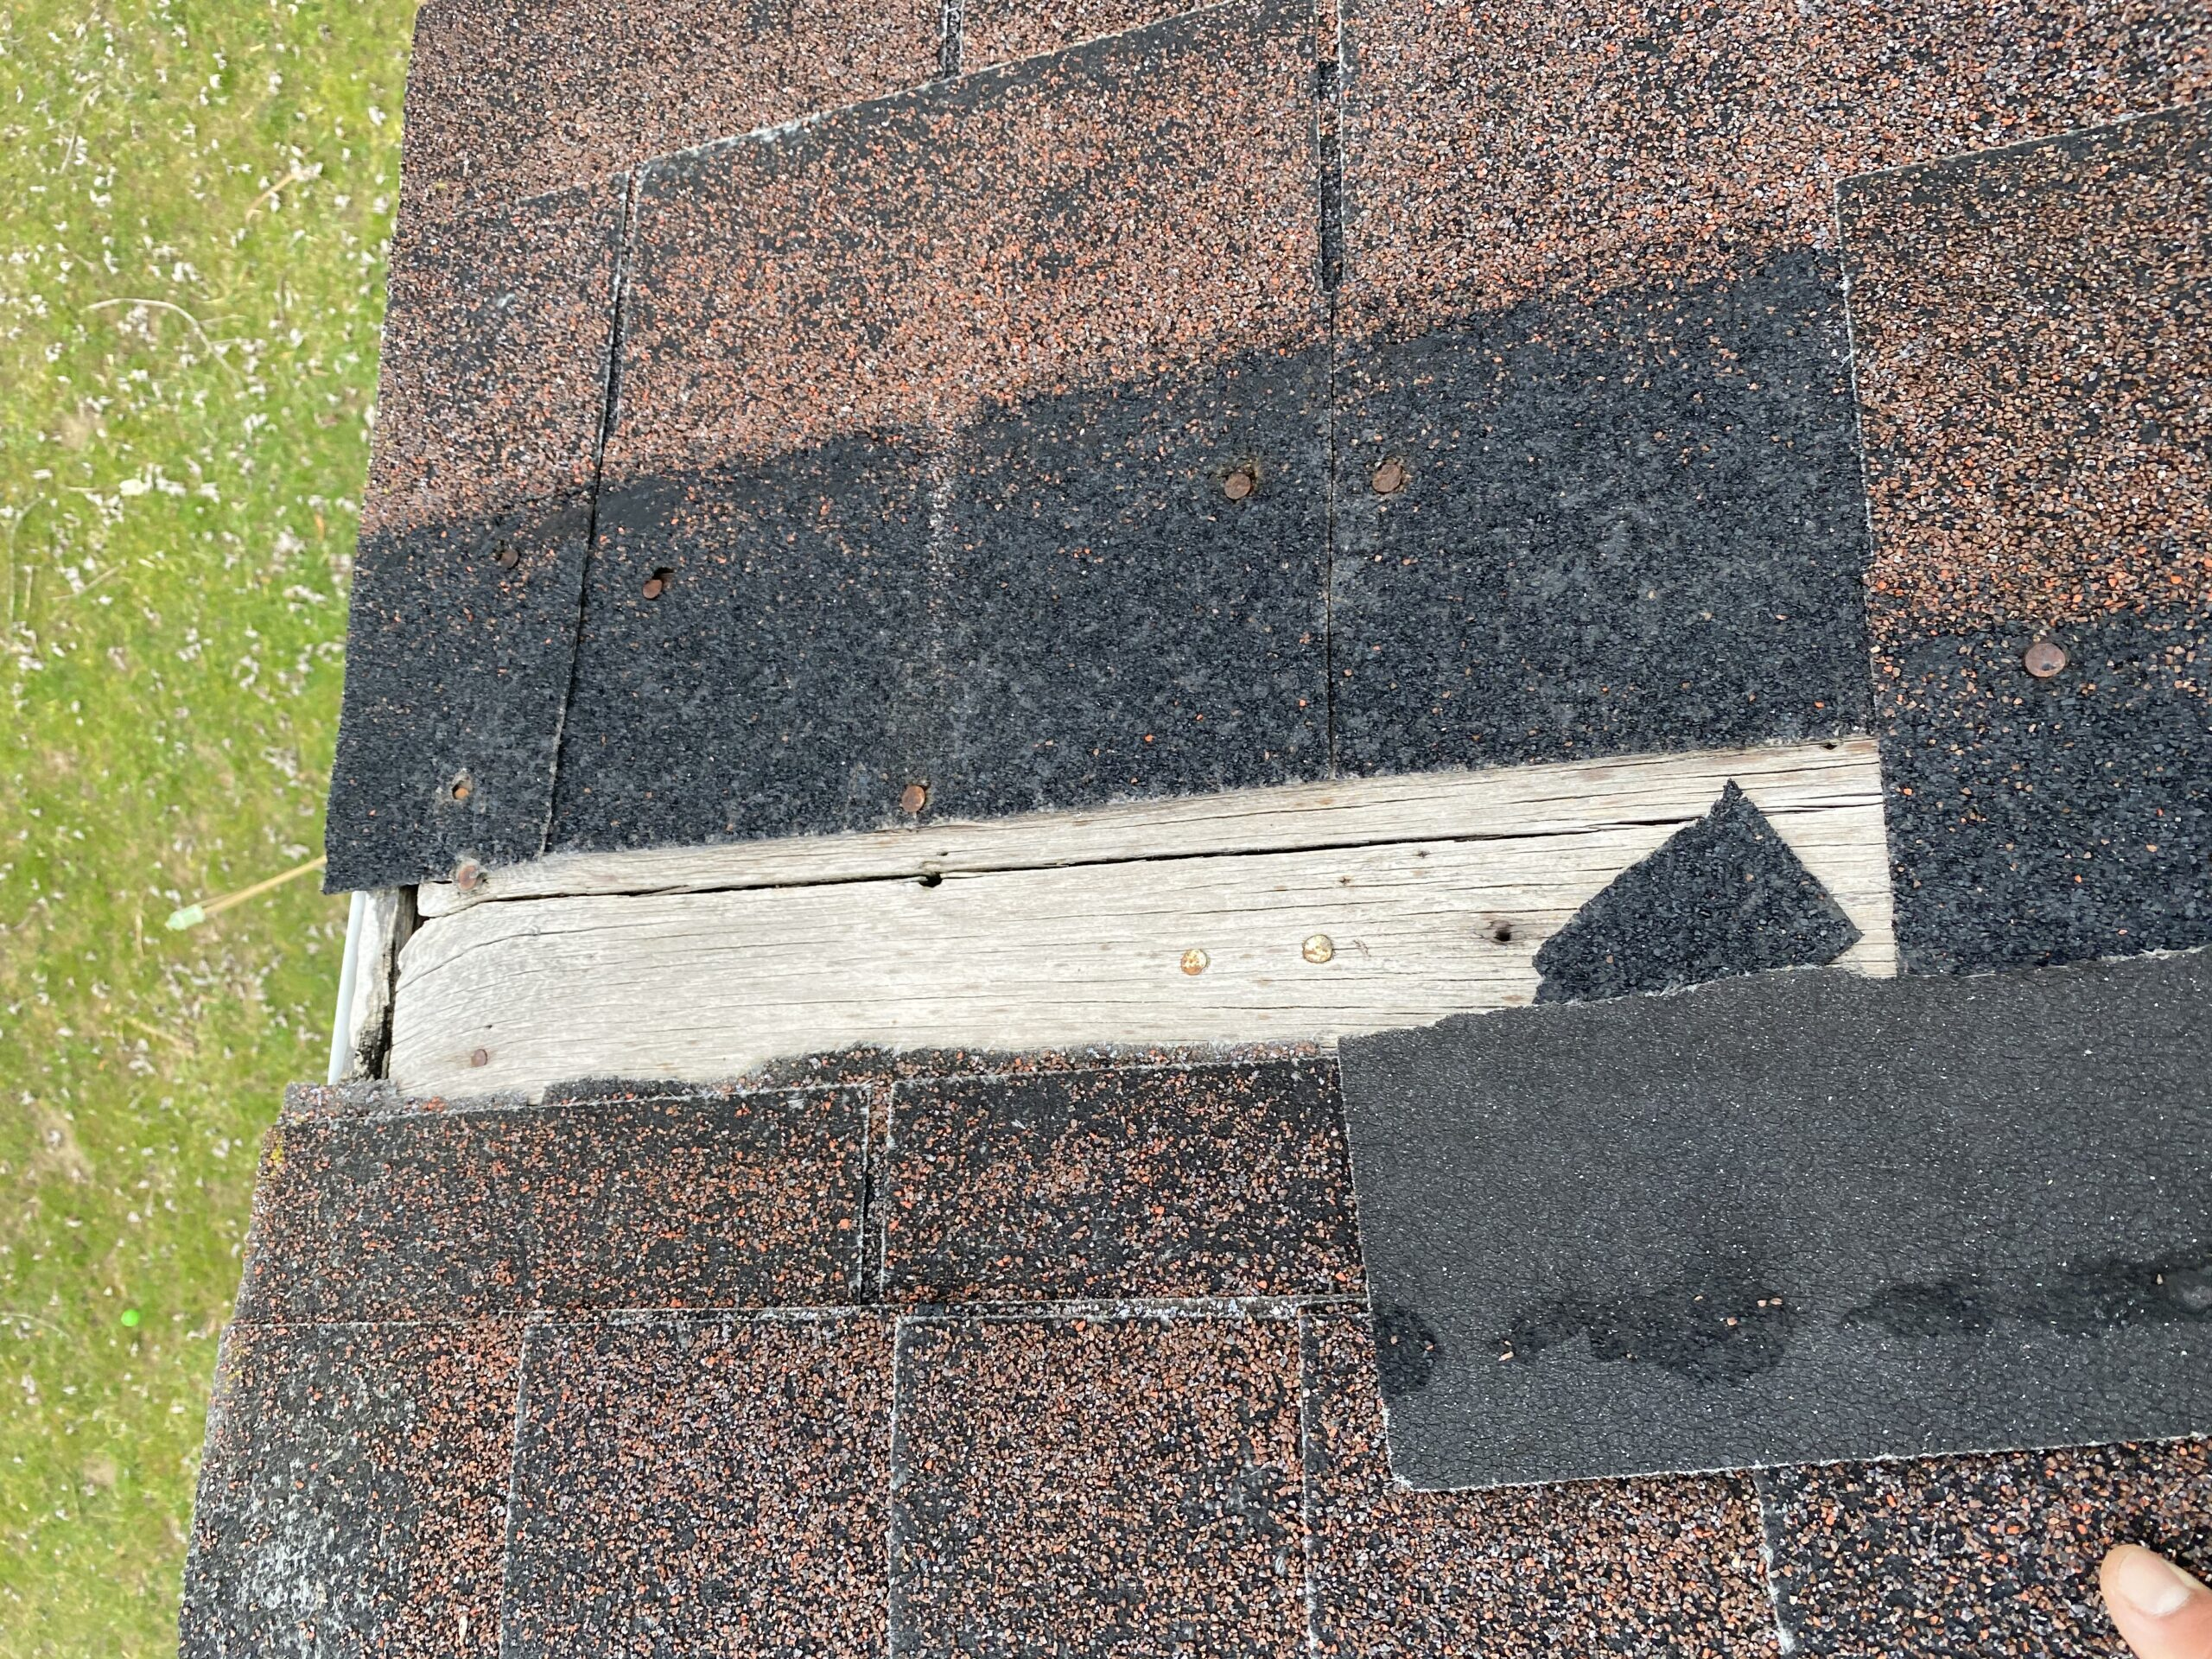 This is a picture of exposed wood on an old brown roof